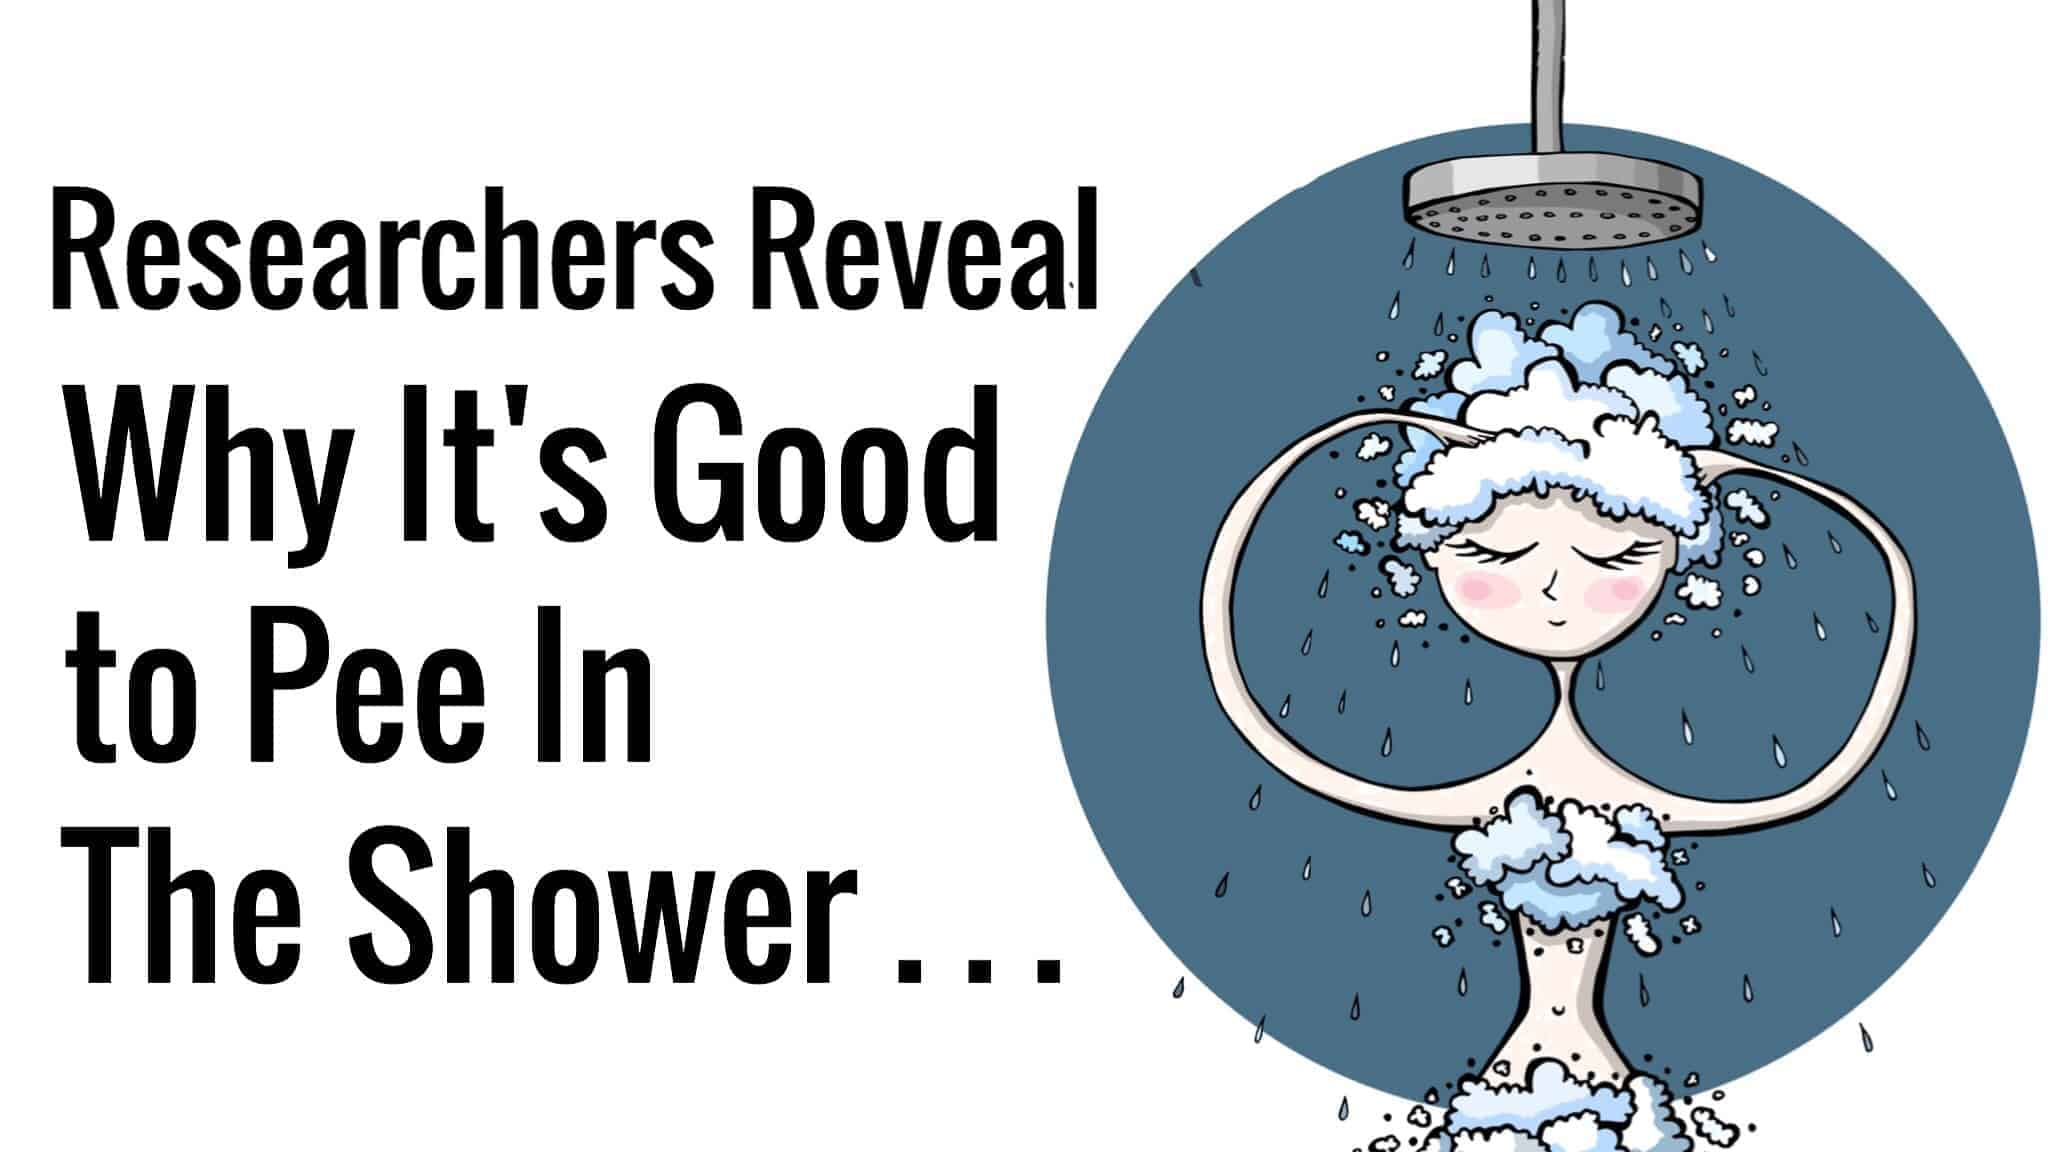 Researchers Reveal Why It's Good to Pee In The Shower